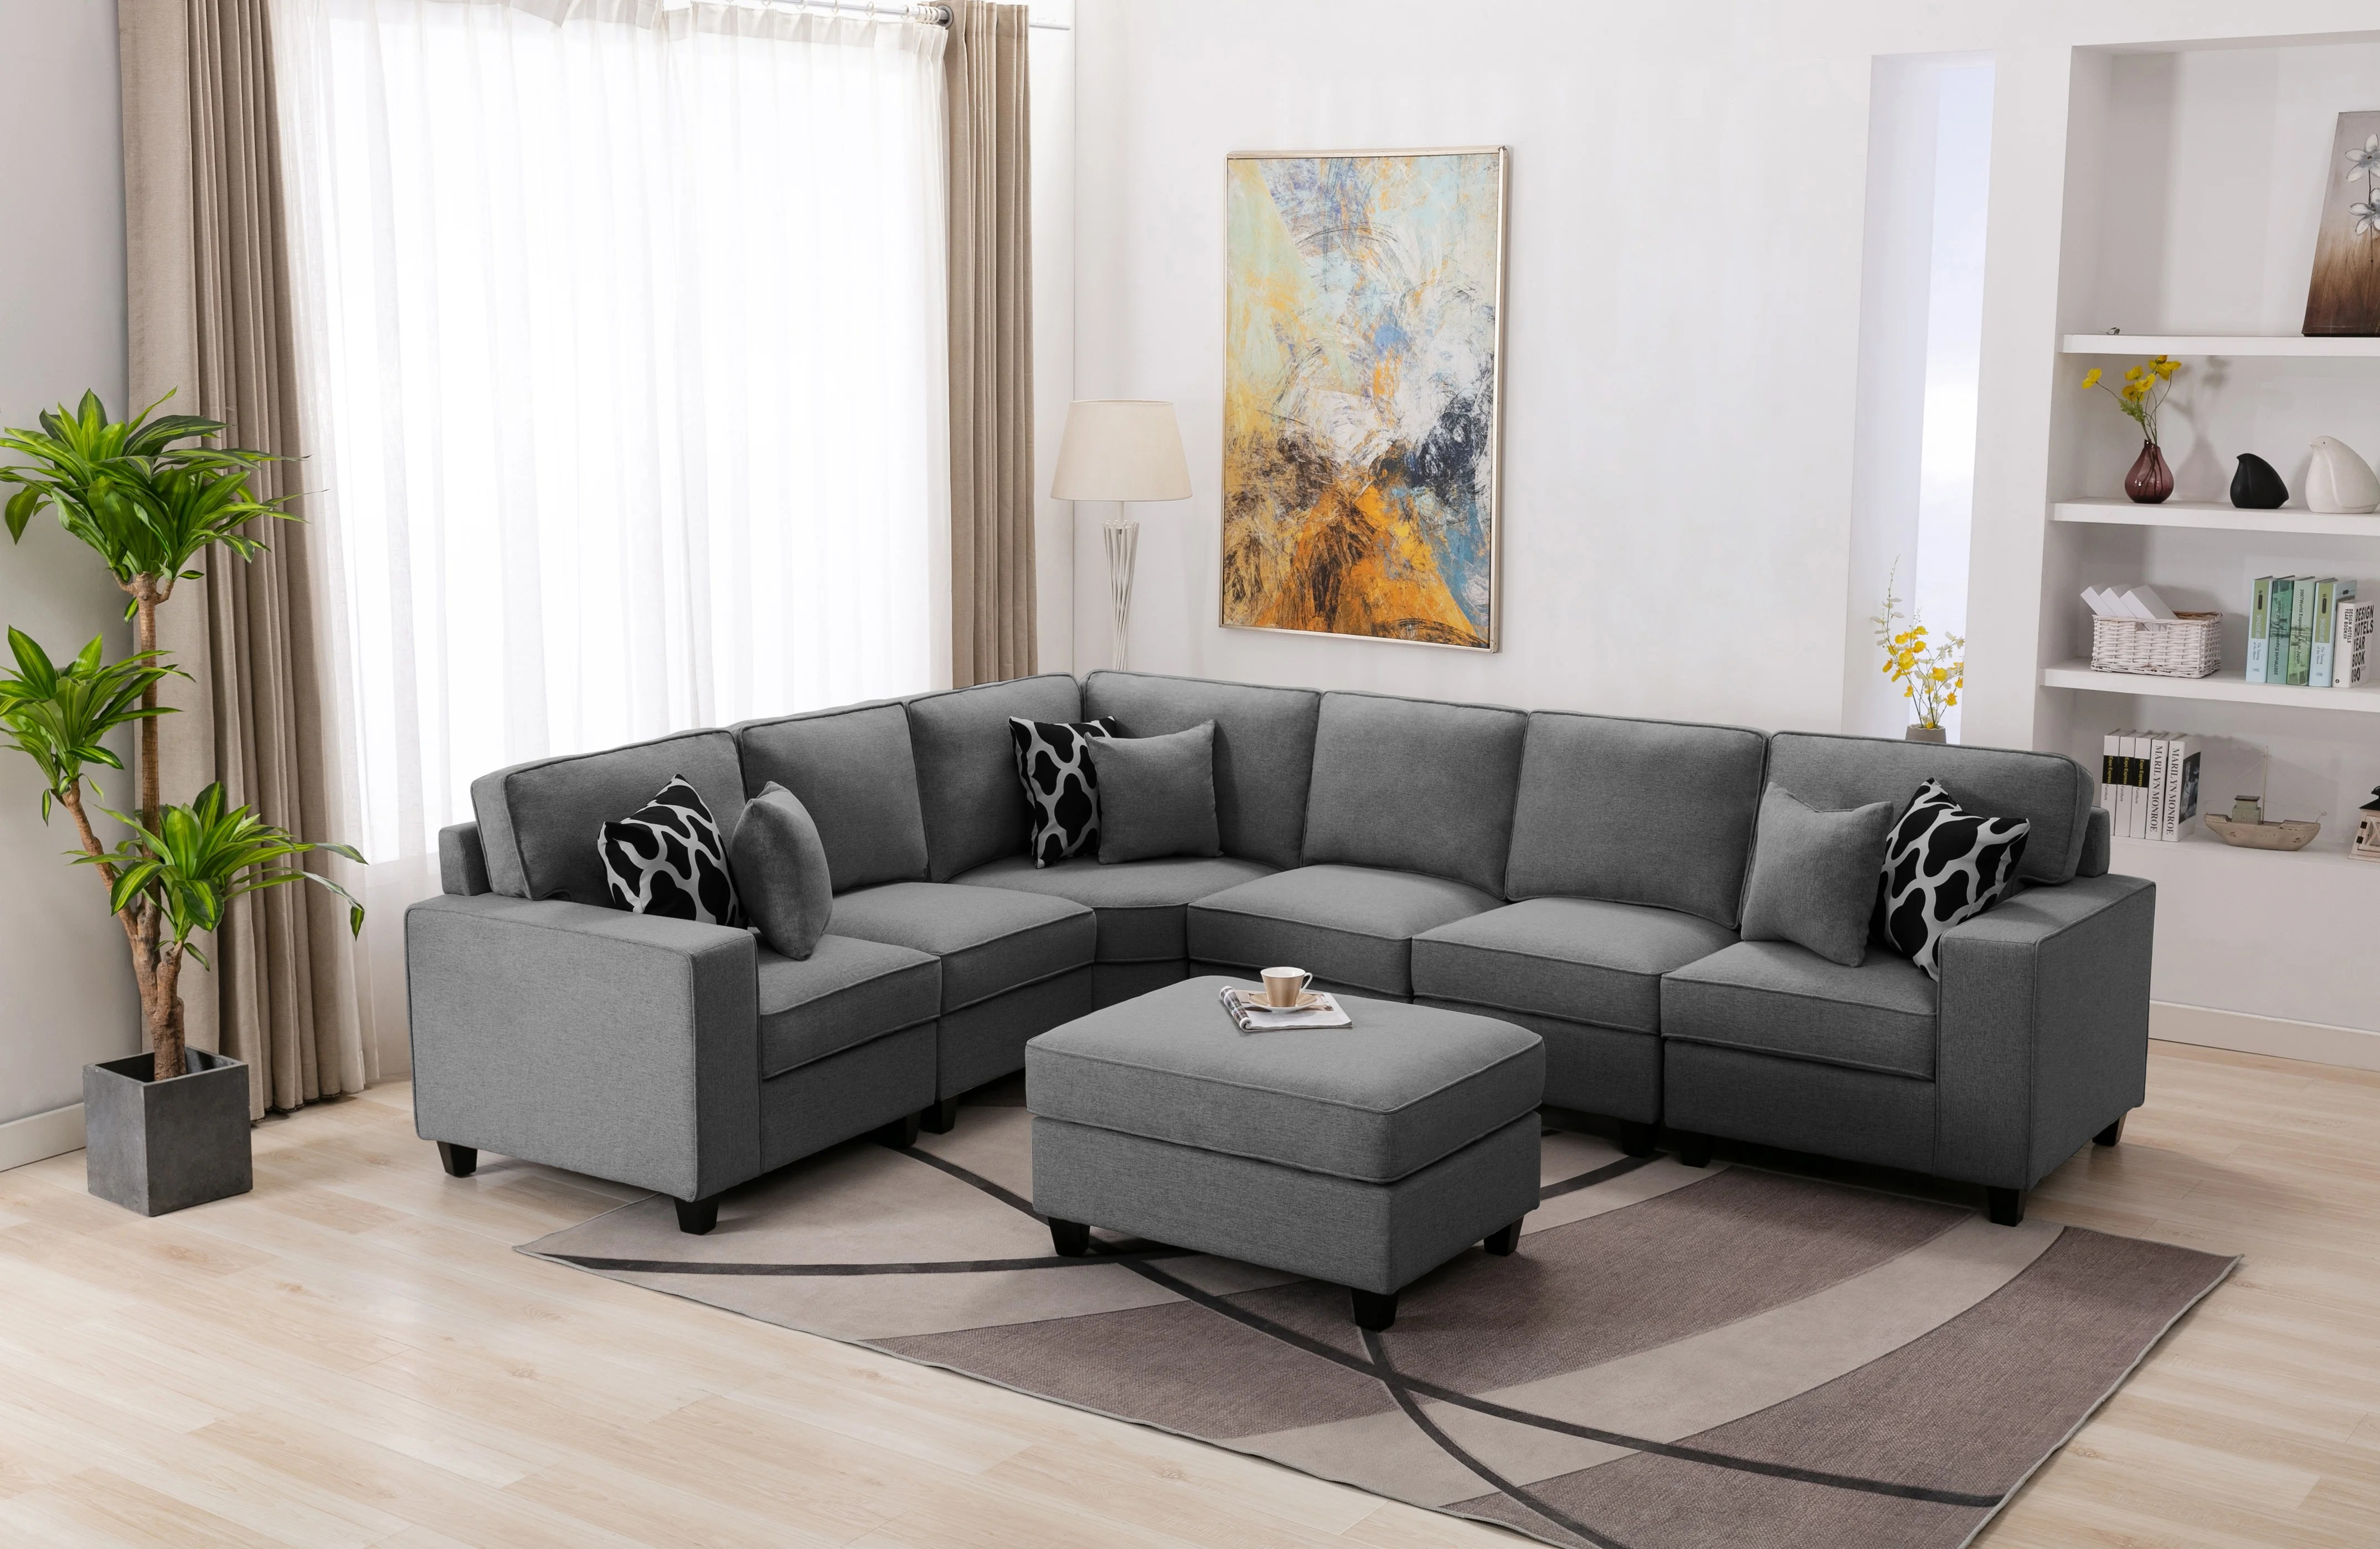 flexible combination sectional sofa with ottoman